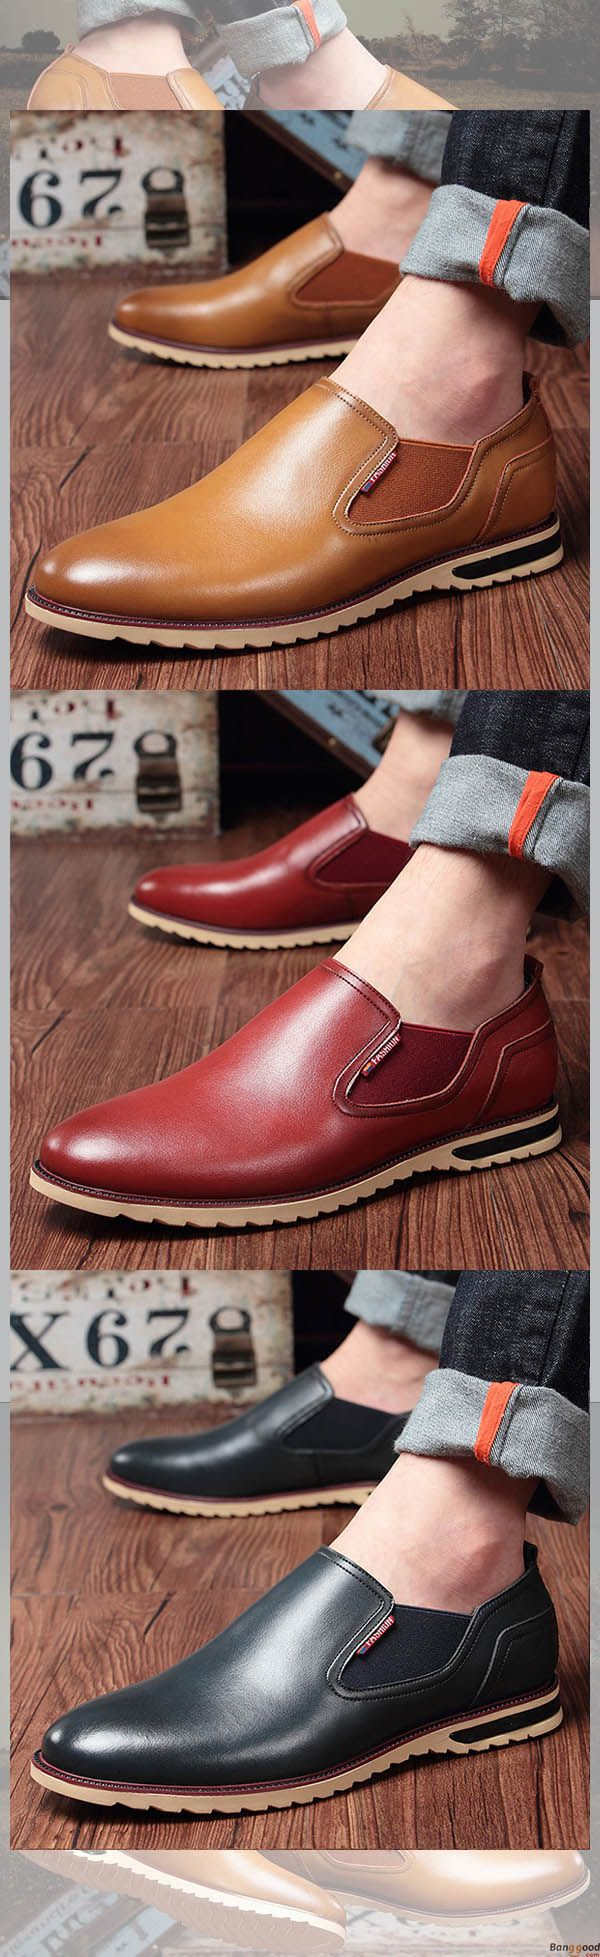 US$43.89+ Free Shipping Men slip on, casual comfortable shoes, oxford shoes. 5 colors available. Fashion and chic, casual shoes, men's oxford shoes, flats, slip on, men's style, chic style, fashion style. Shop at banggood with super affordable price. #m